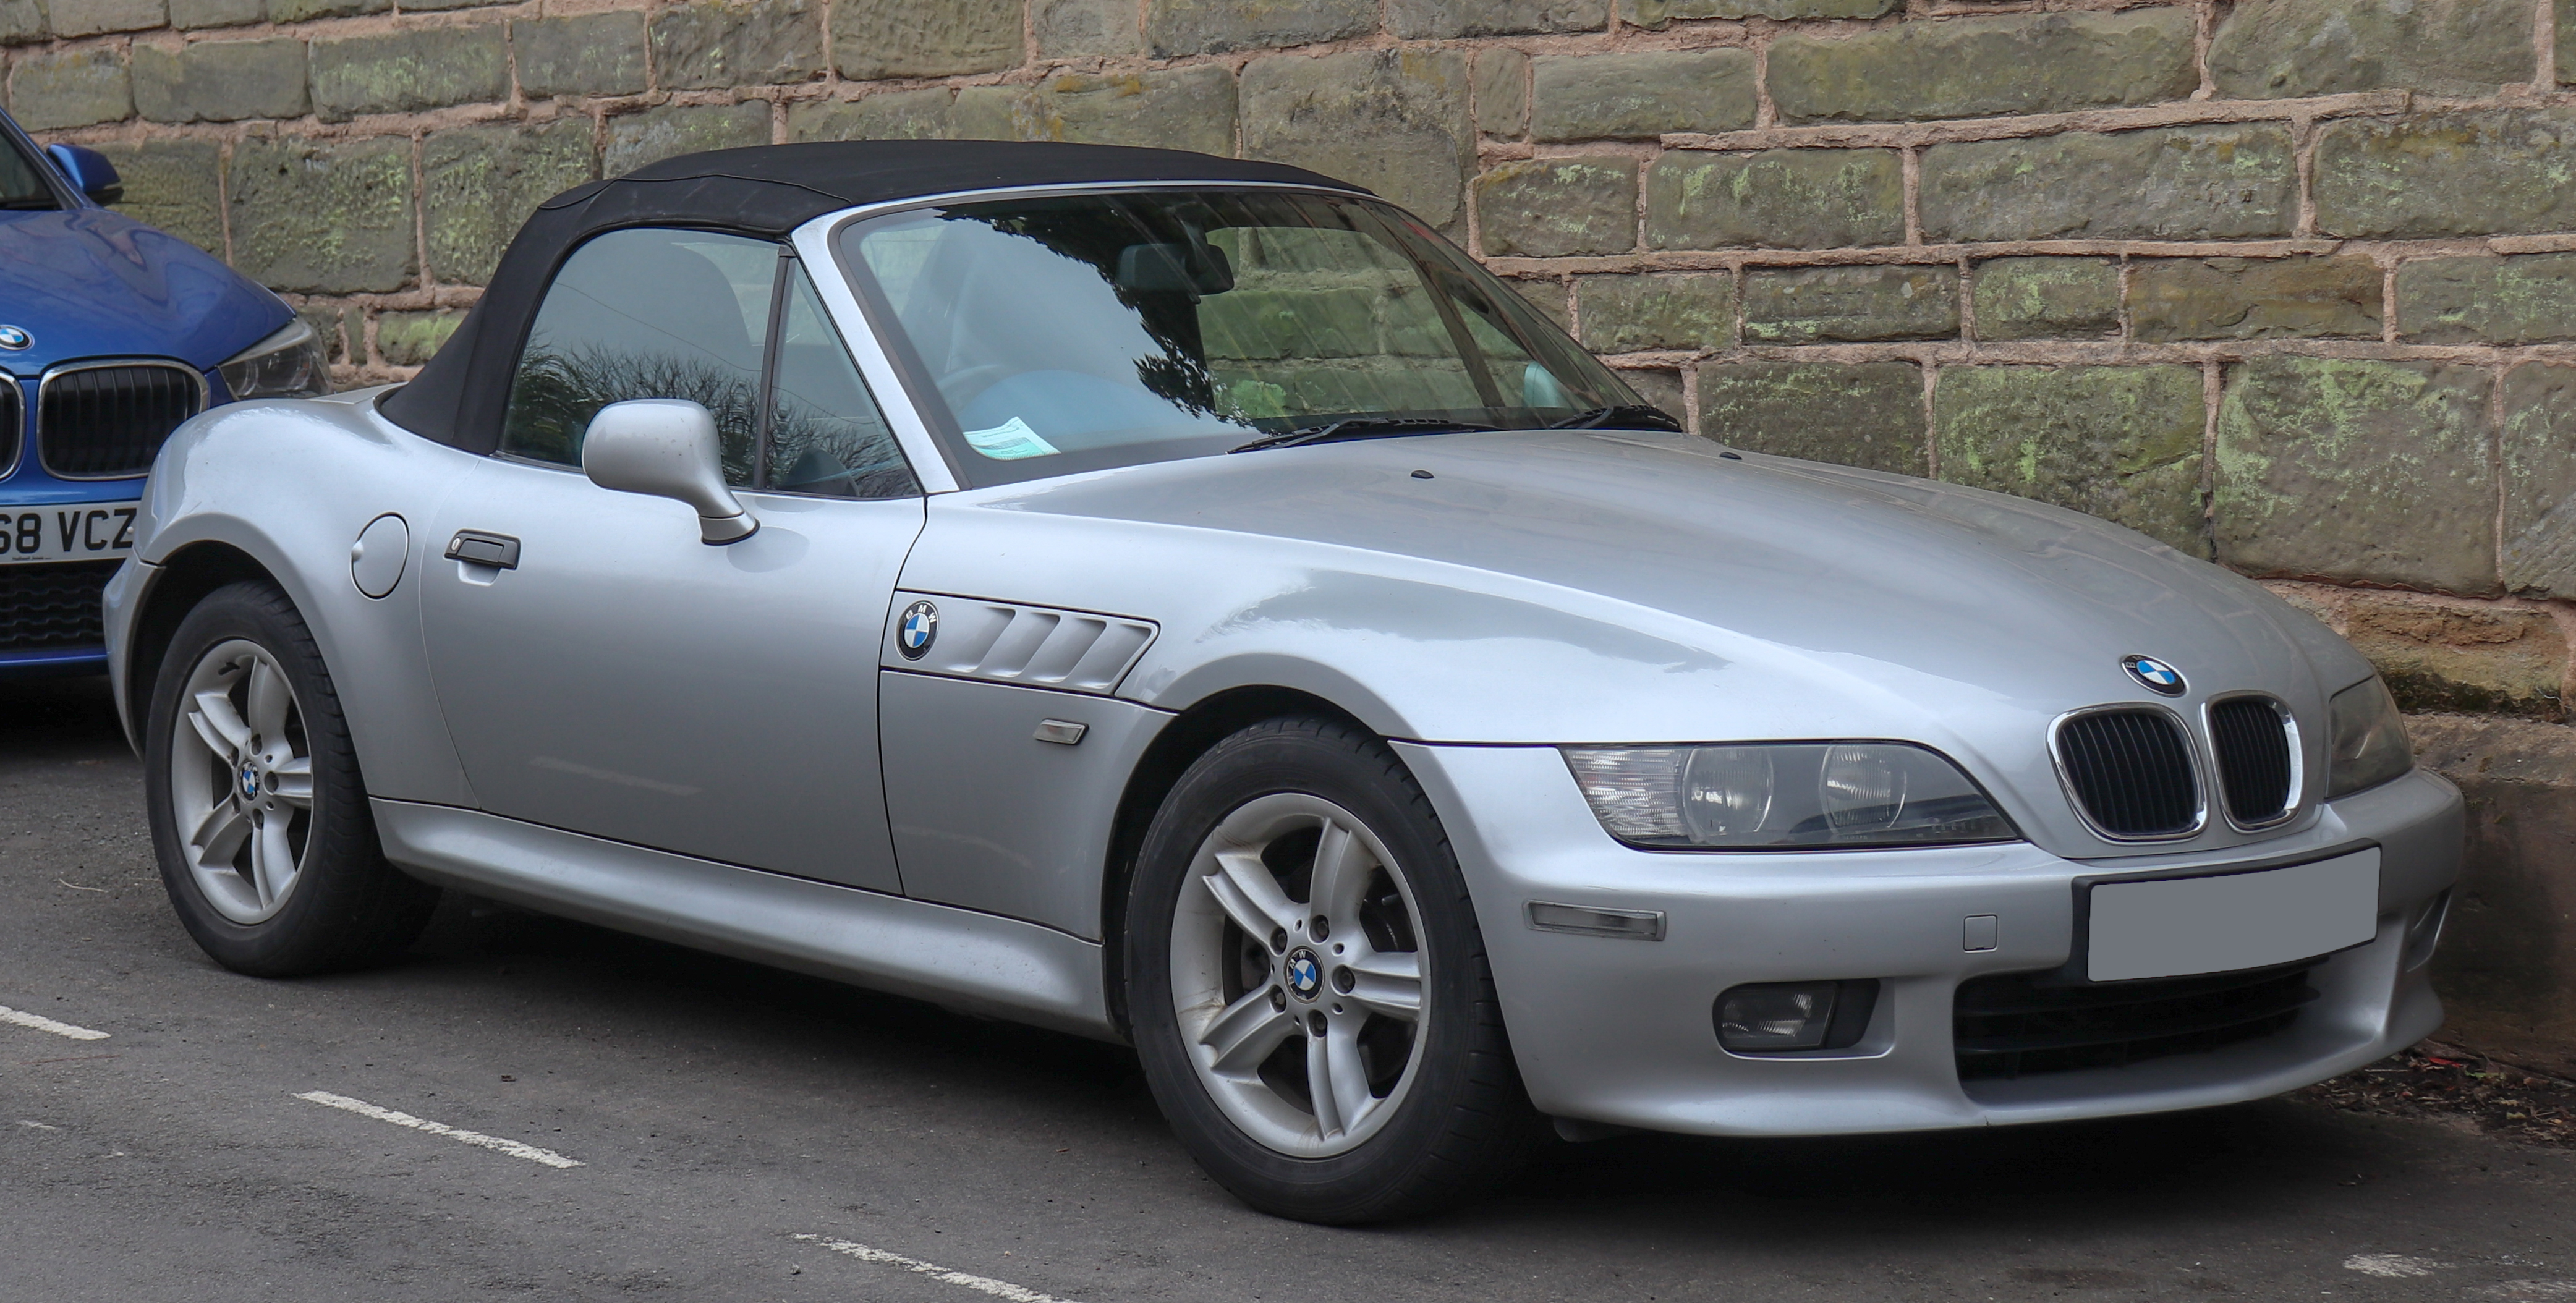 Wiring Diagram 2001 Bmw E36 7 Z3 M Roadster Coupe Electrical Wiring